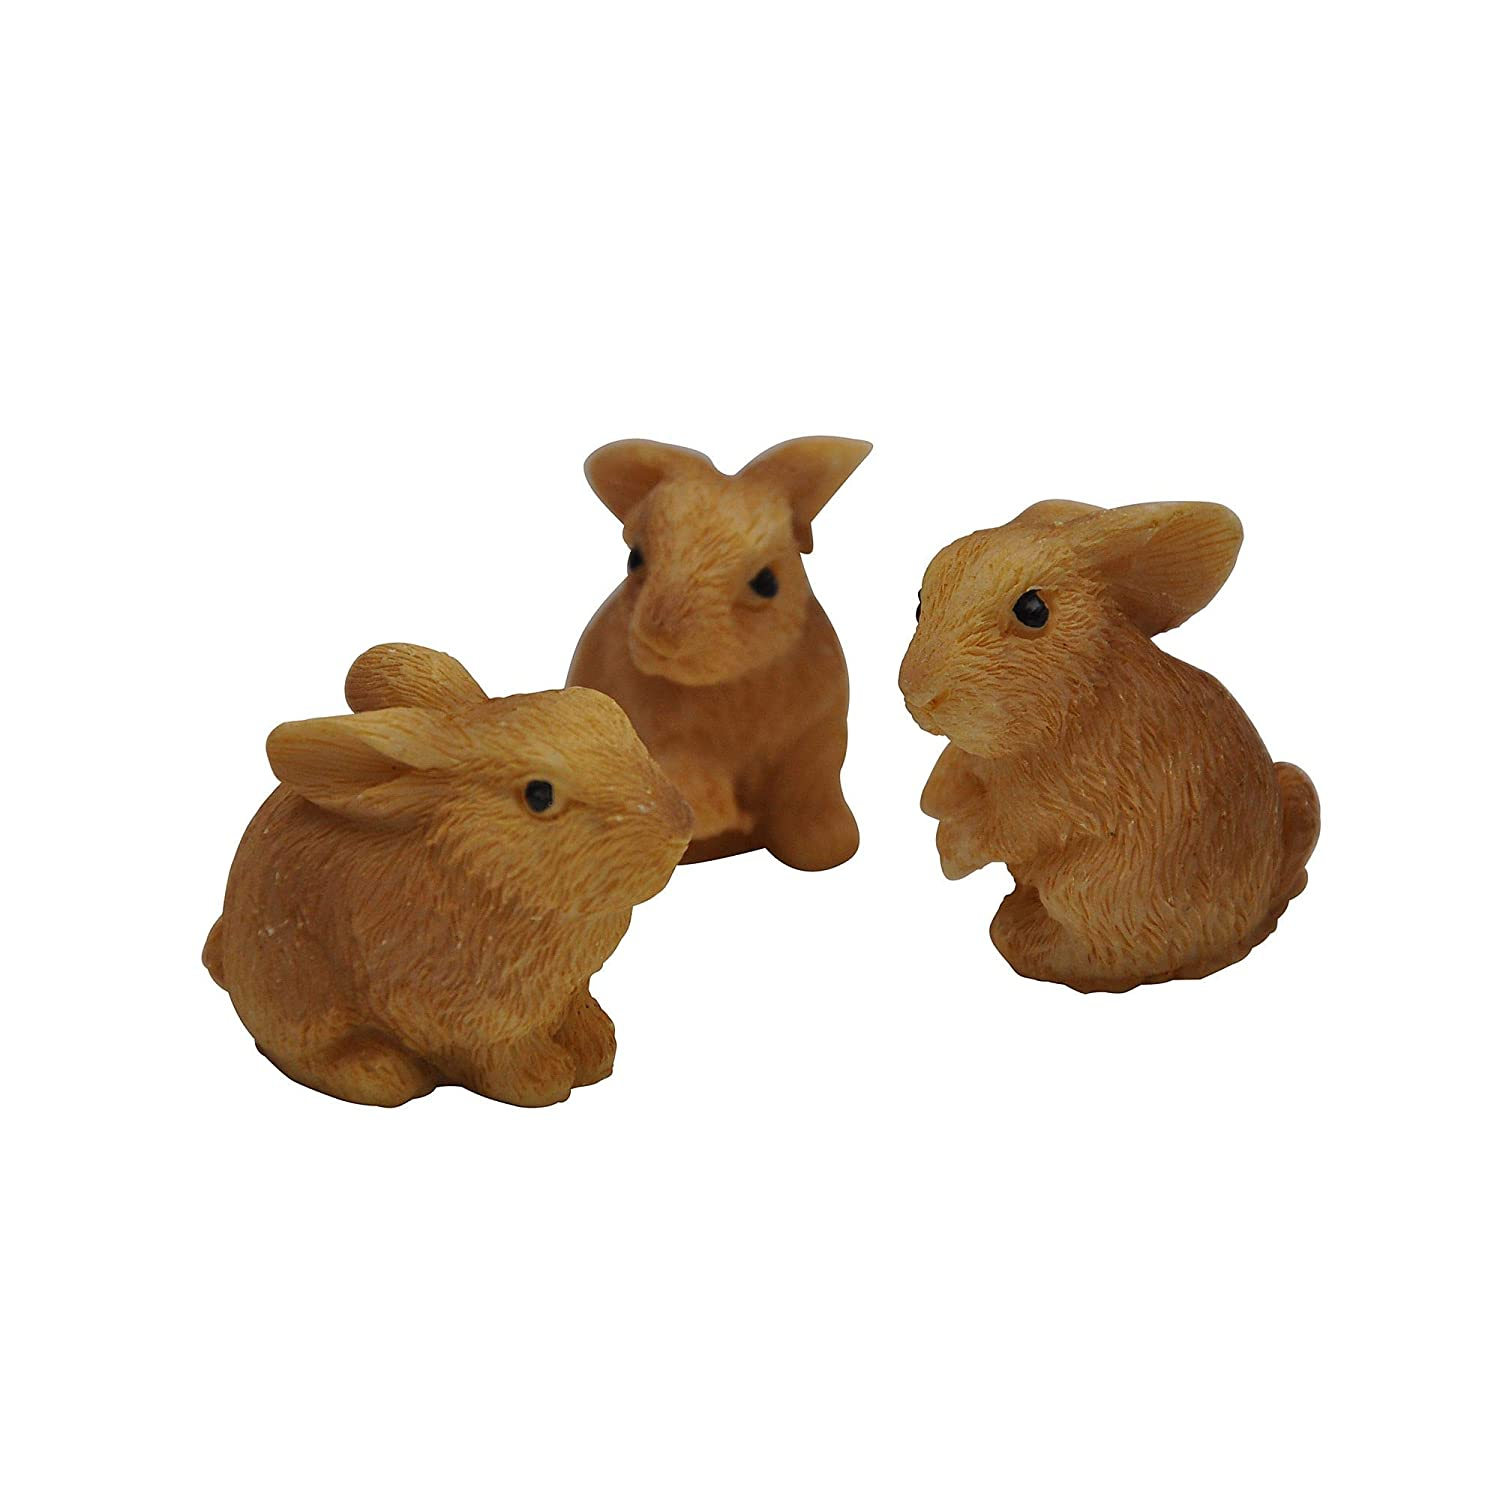 Darice Yard and Garden Minis - Rabbits - Resin - 3 pieces, Tan, 1 x 1 inch